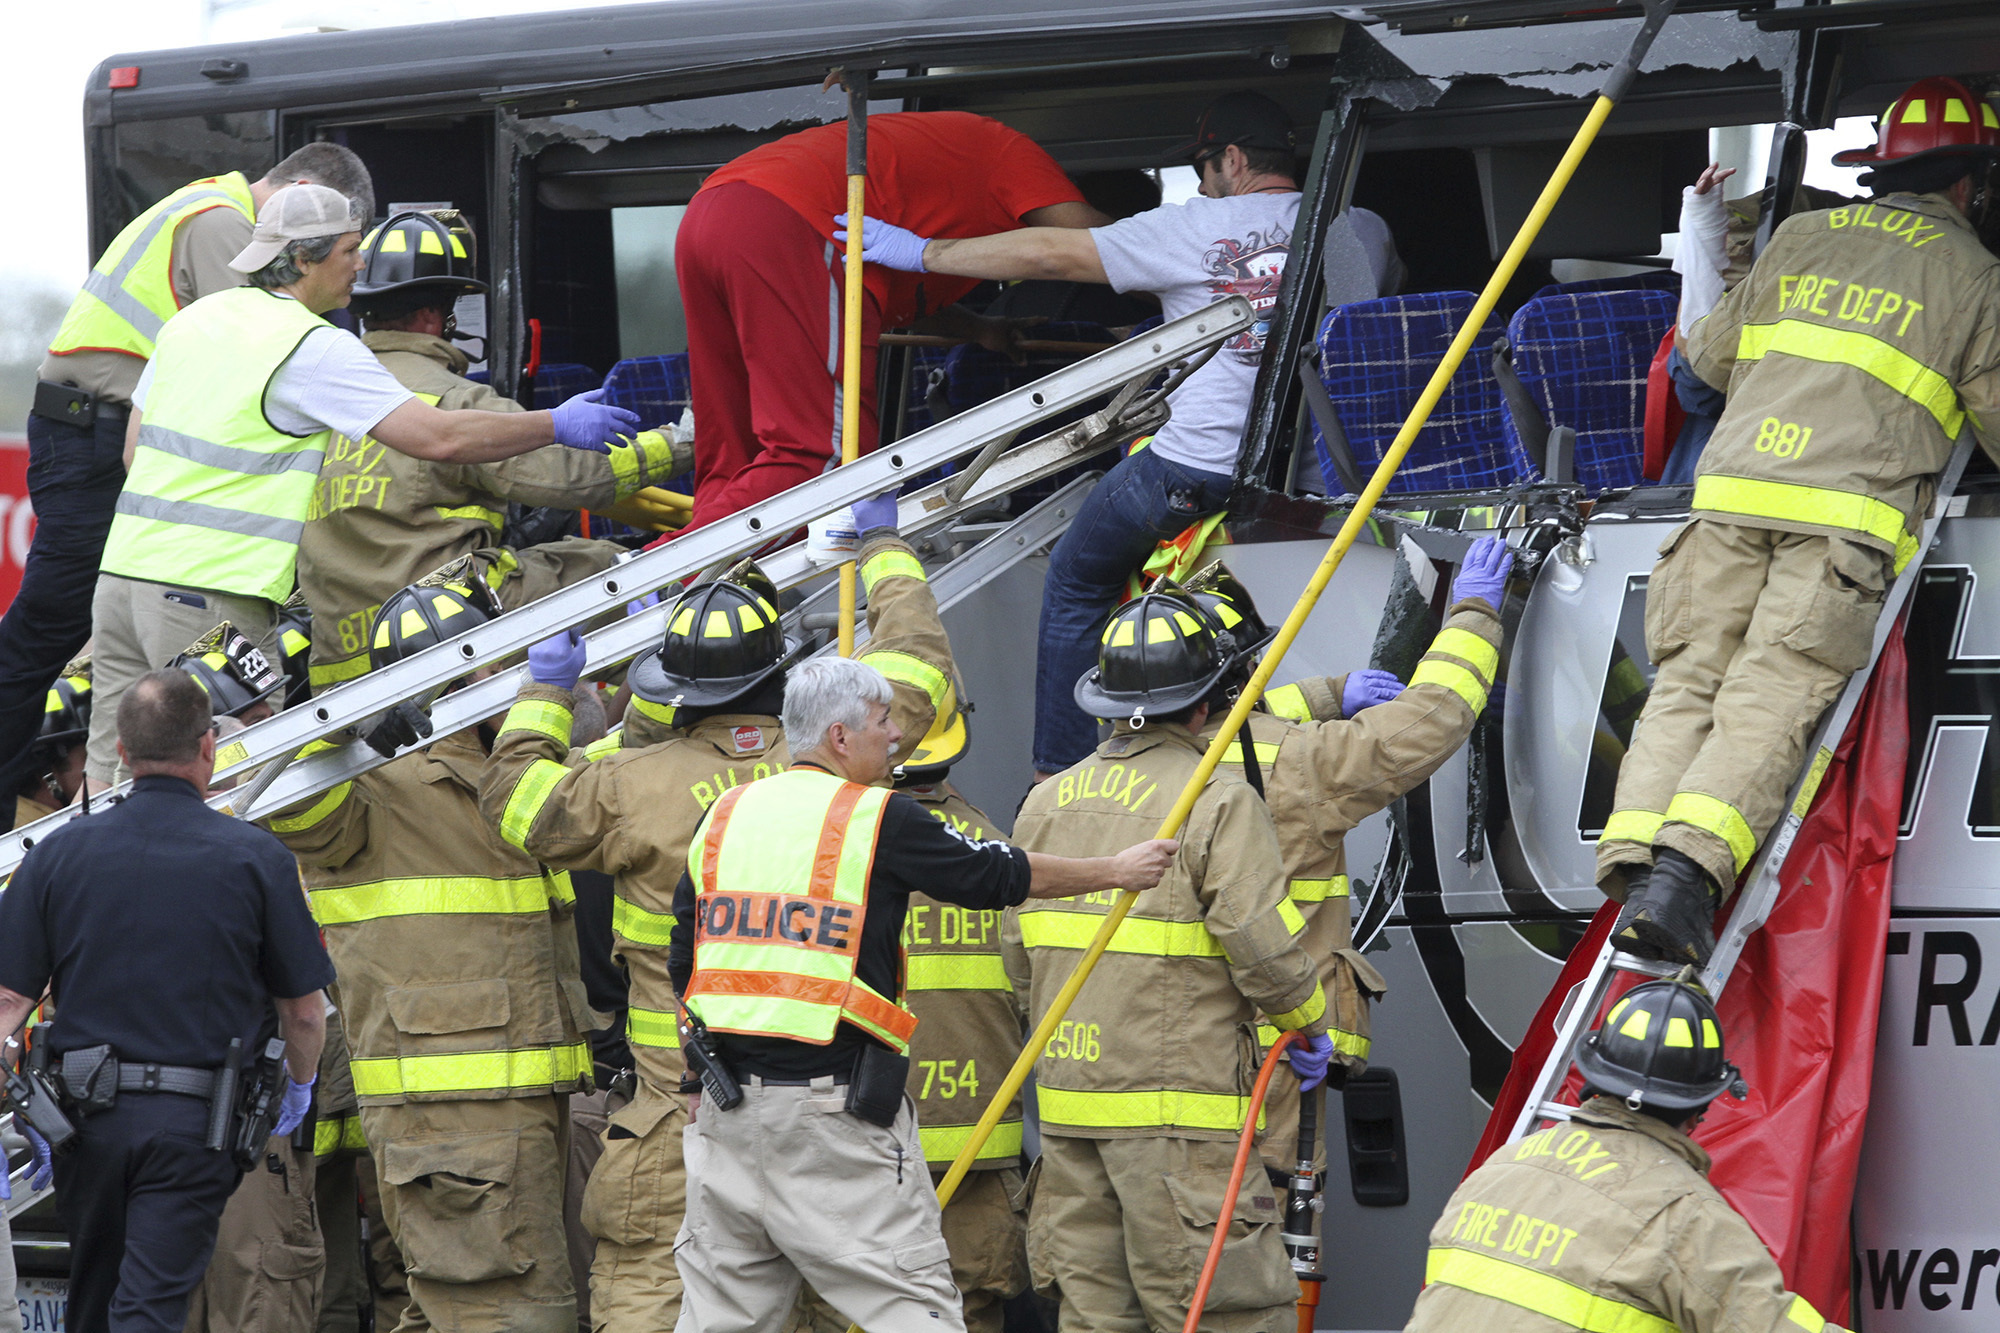 Rescue personnel work to remove passengers from a charter bus that was hit by a CSX train at the Main Street crossing in Biloxi, Miss., on March 7, 2017. ( John Fitzhugh/The Sun Herald via AP)